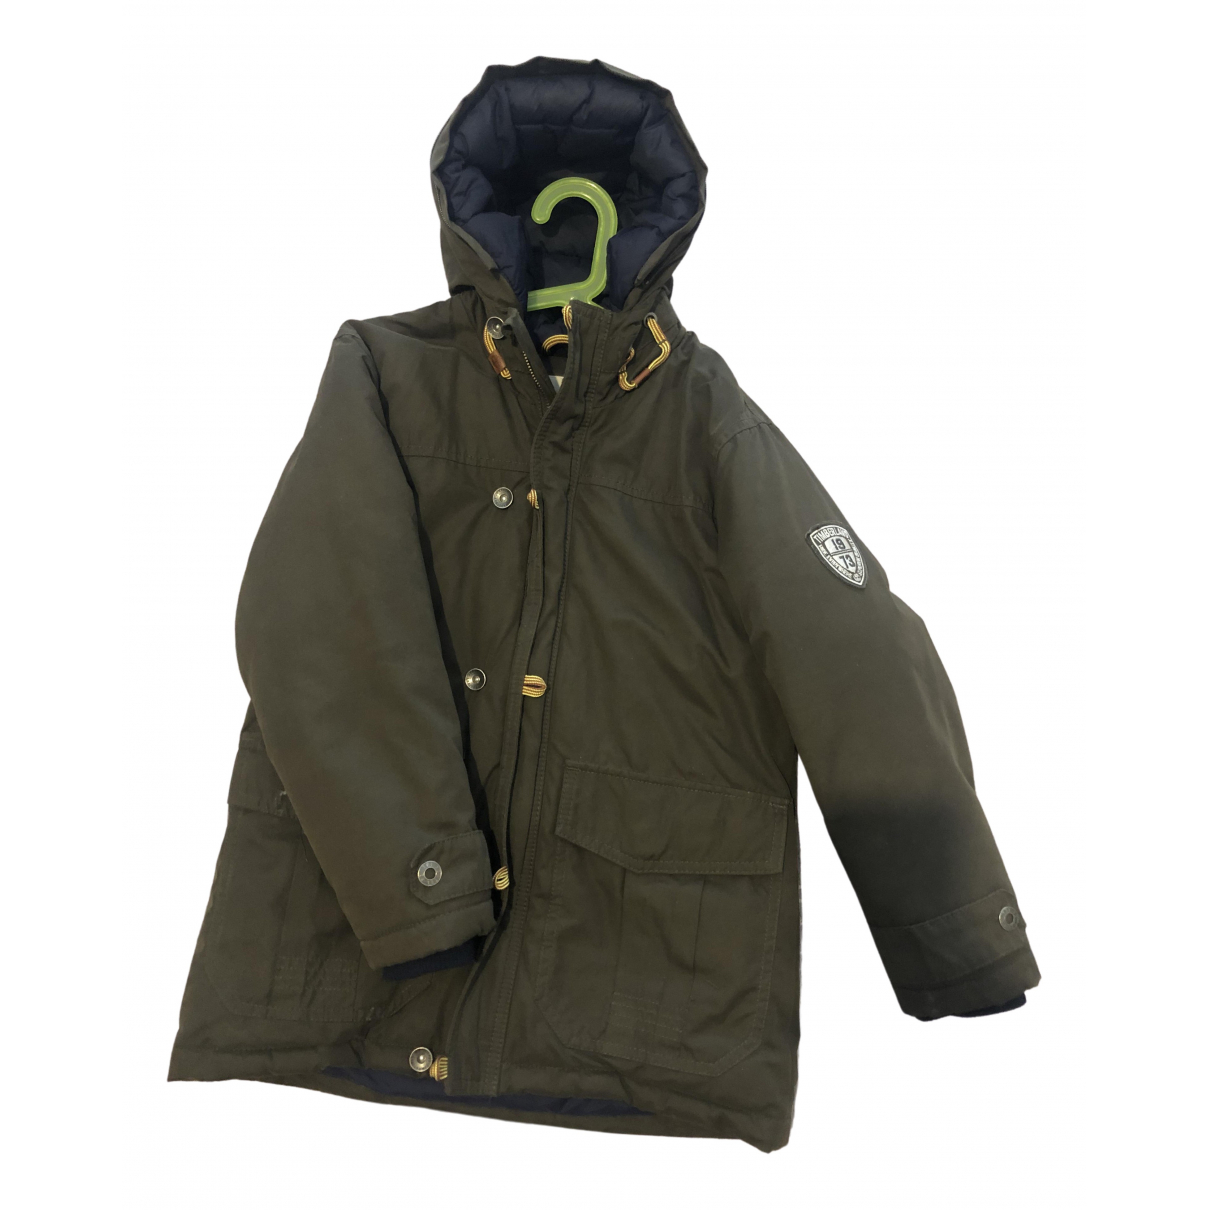 Timberland \N Green jacket & coat for Kids 8 years - until 50 inches UK